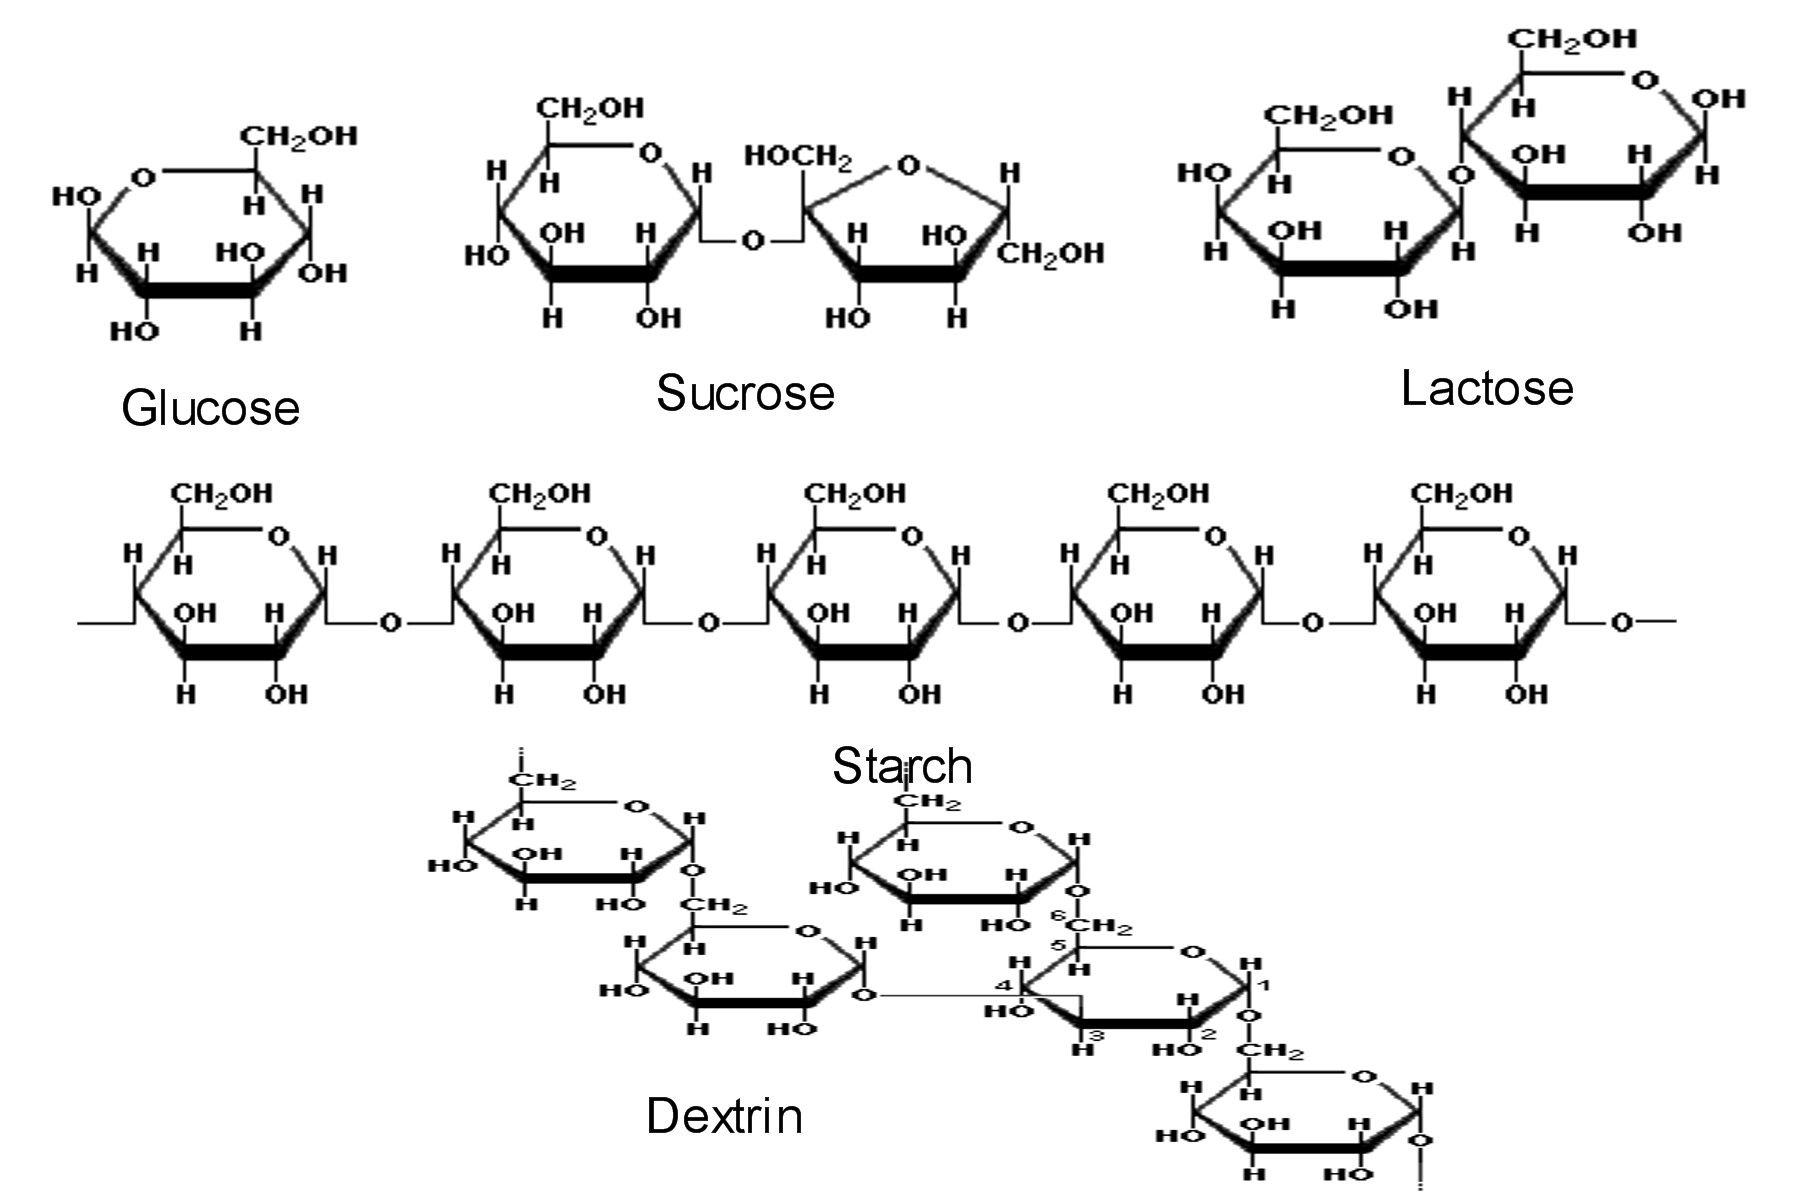 carbohydrate structure diagram wire for trailer carbohydrates are sugars and starches simple like